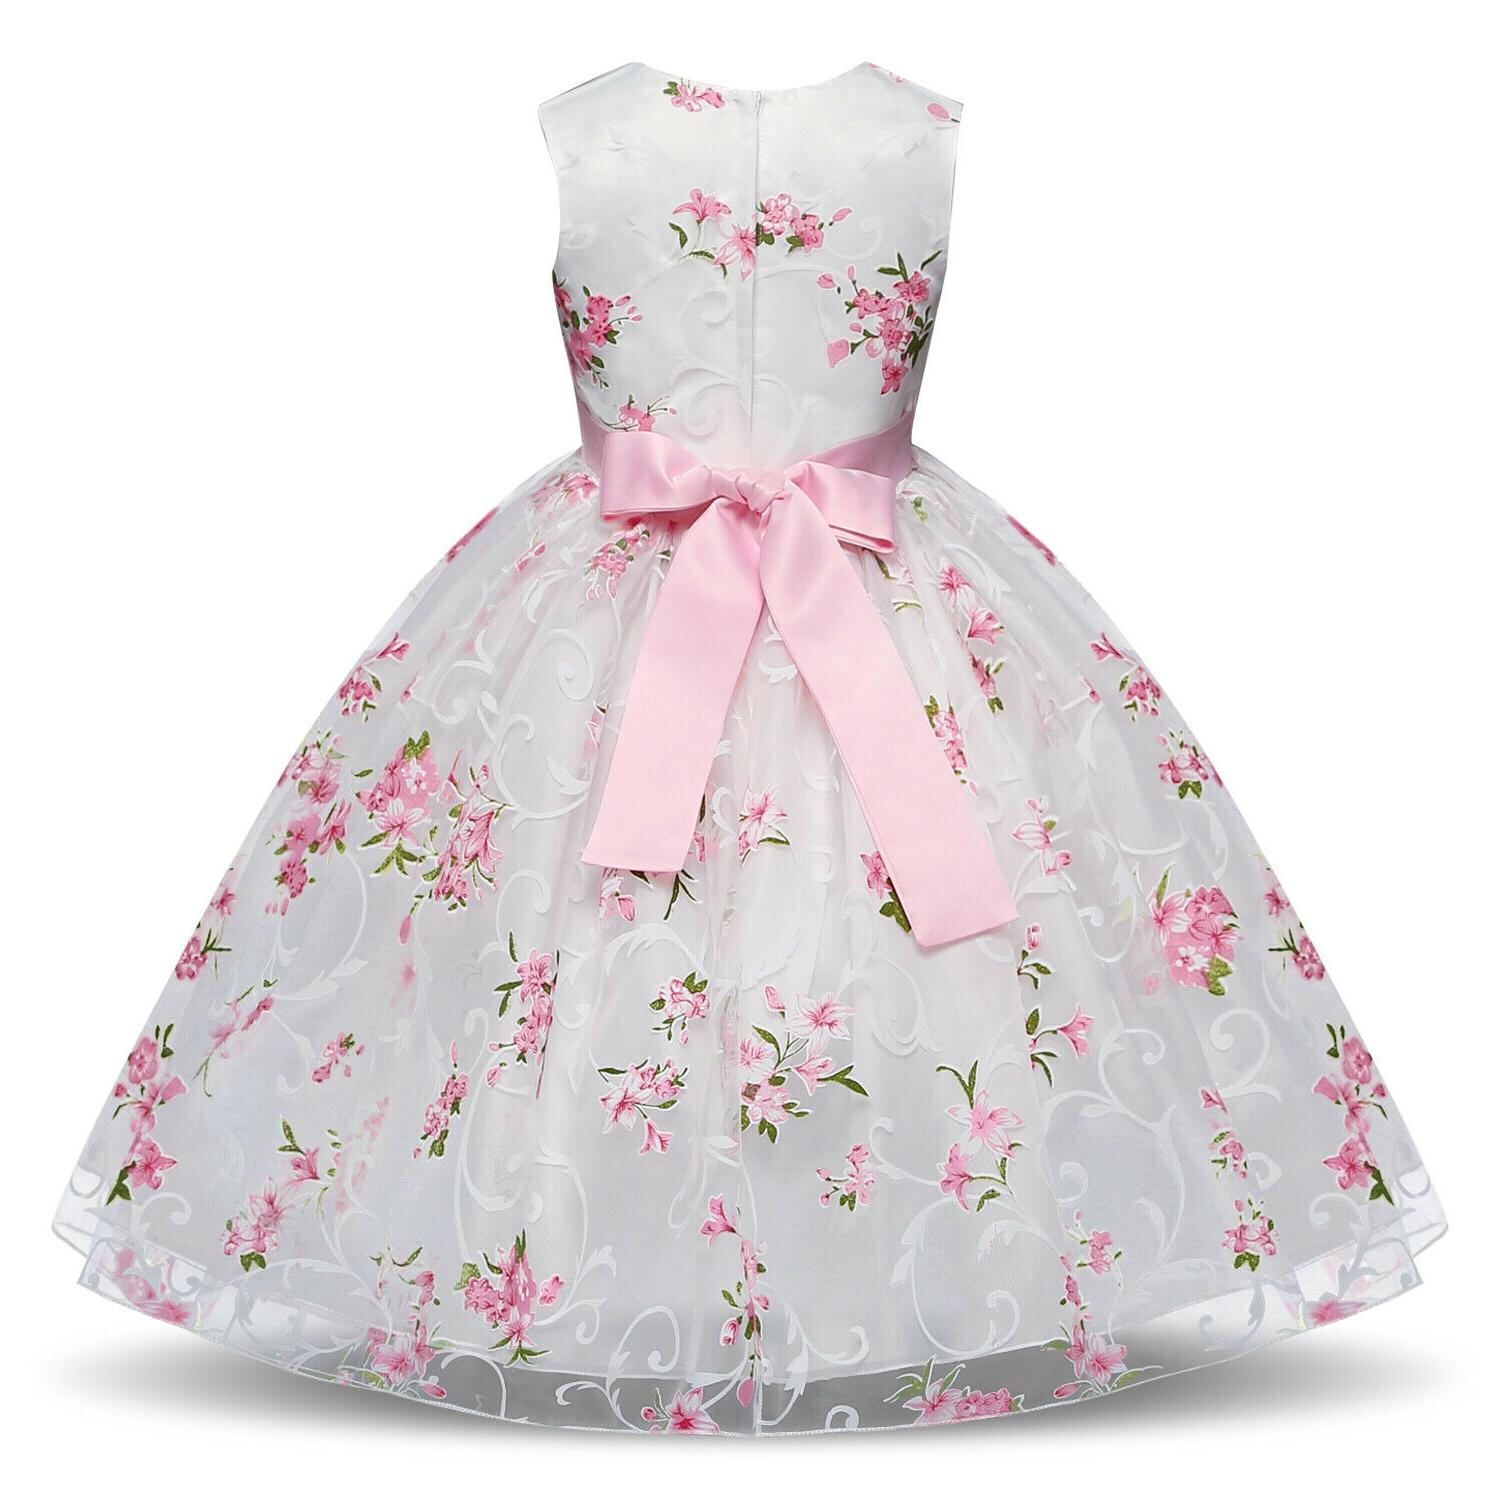 Baby Flower Princess Party Bridesmaid 8T